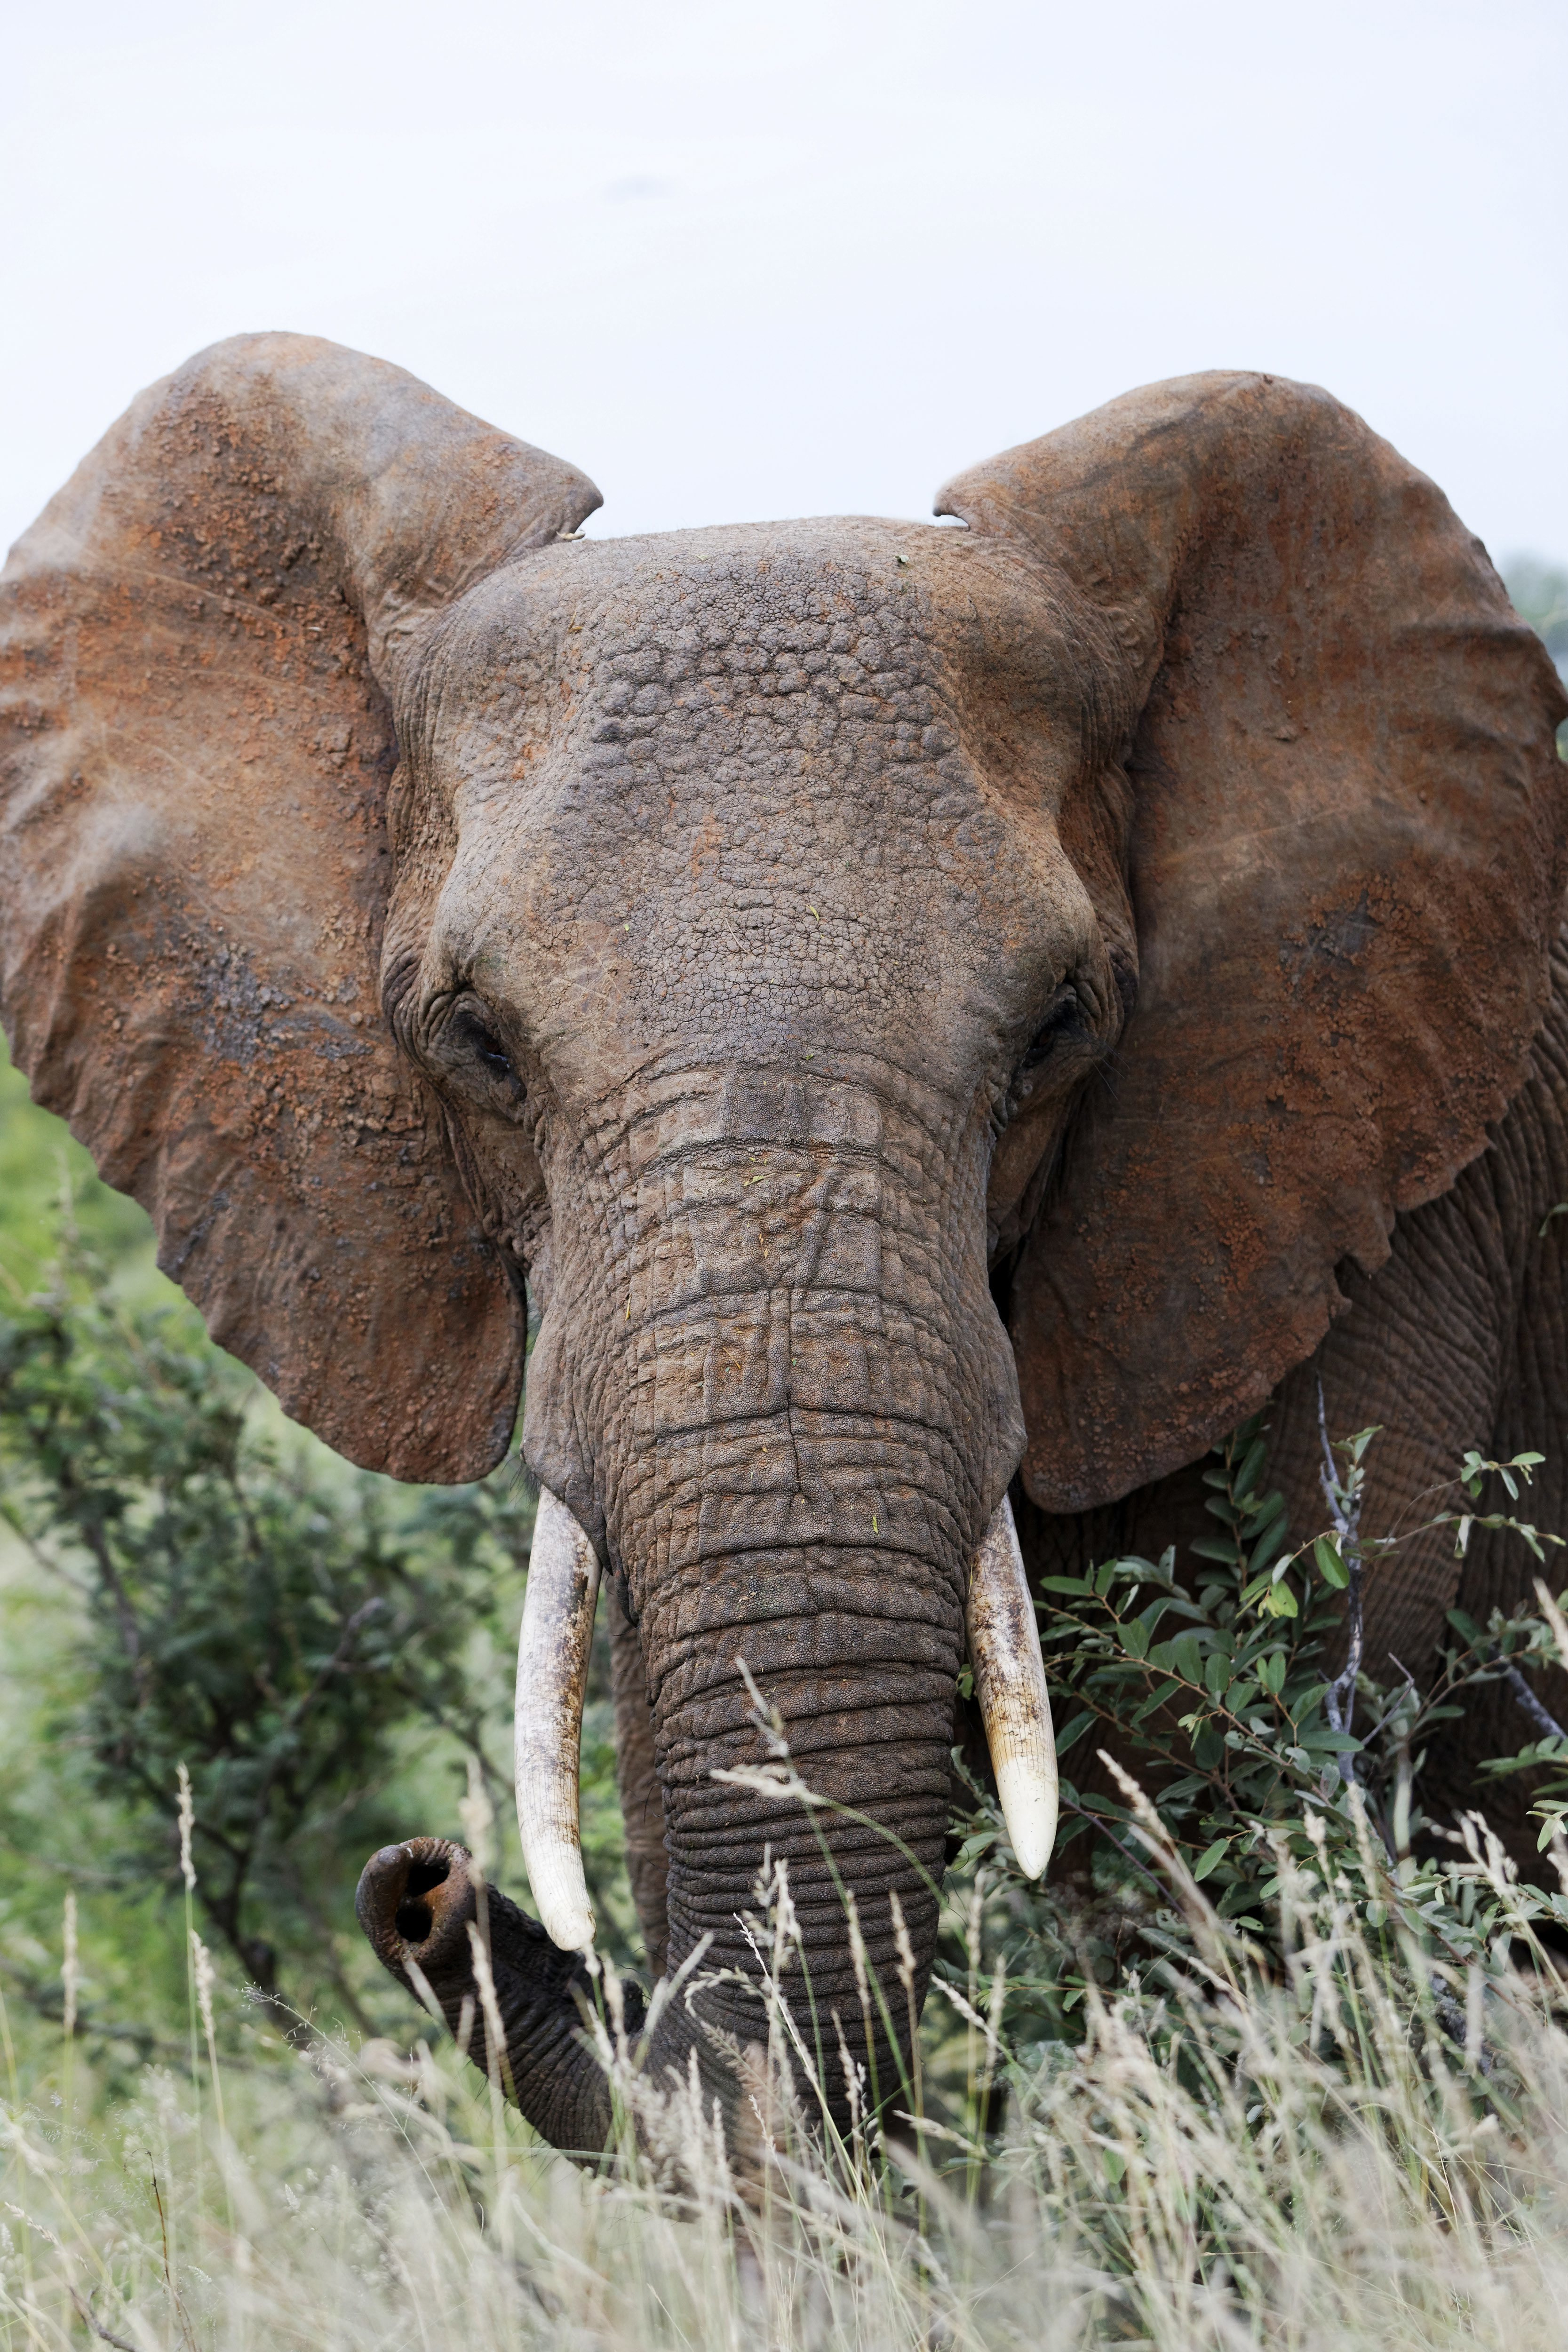 An elephant in South Africa. Credit: PA